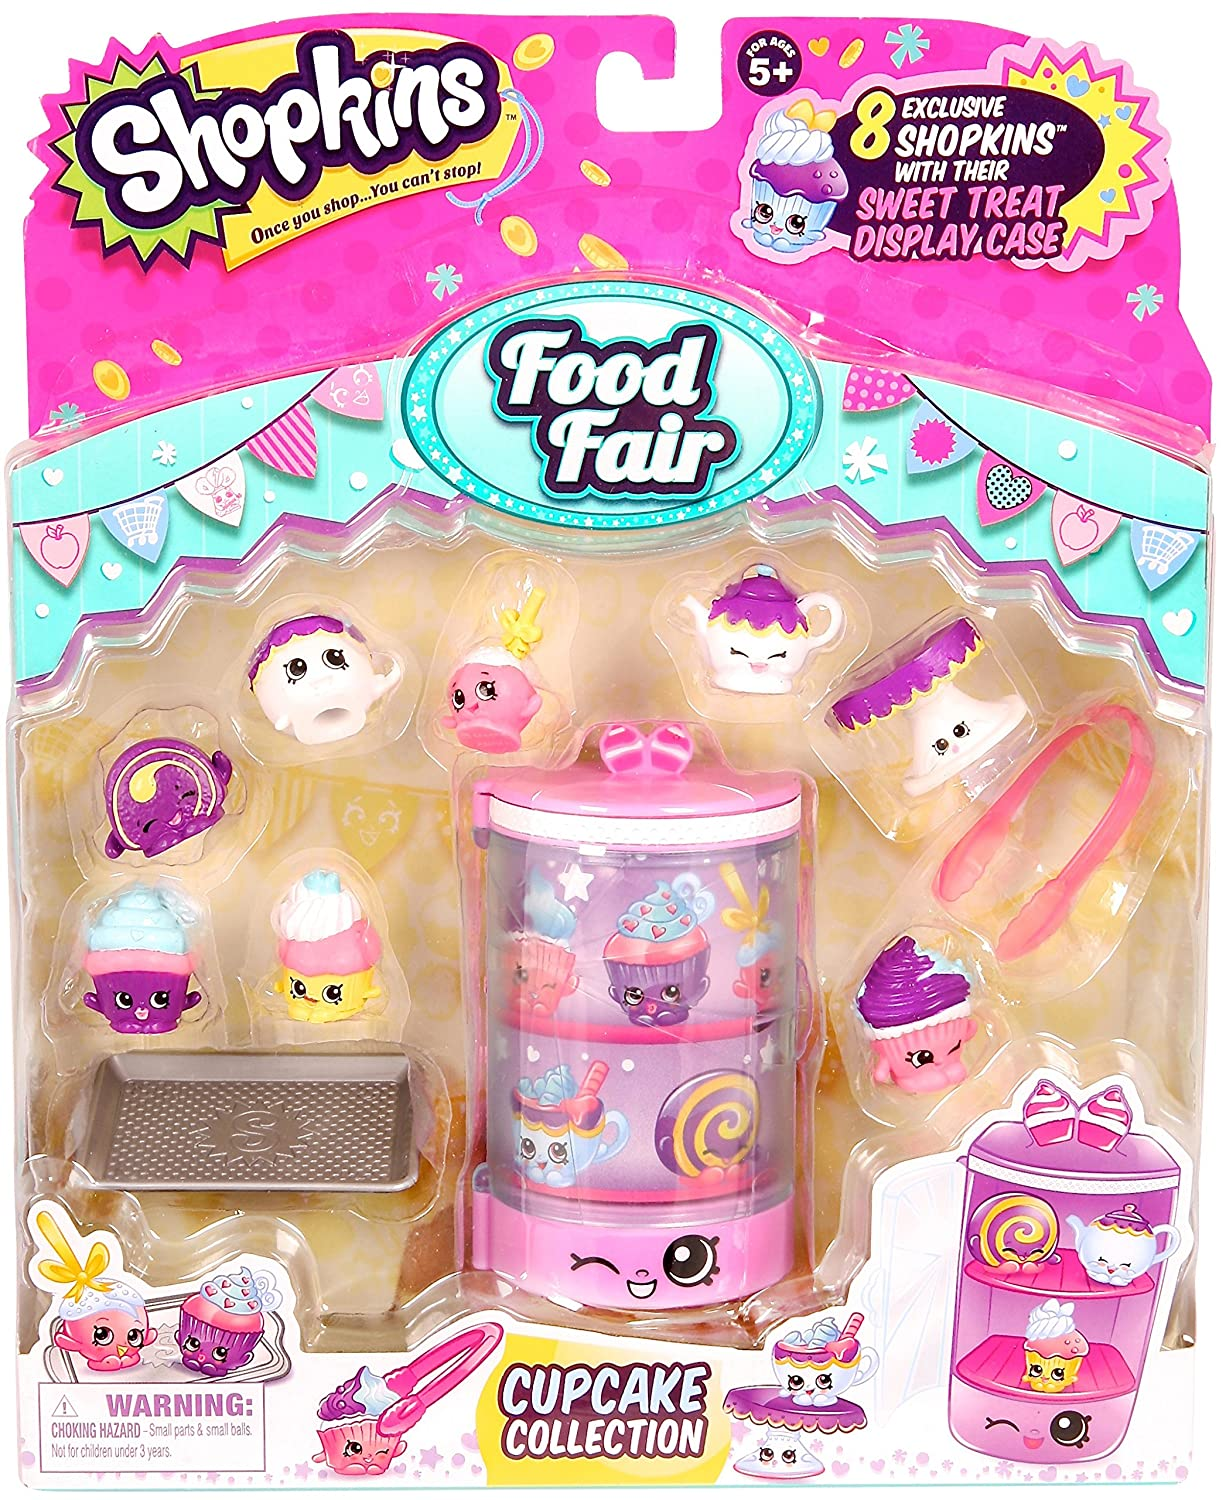 Shopkins Season 3 Food Fair Pack - Cupcake Collection